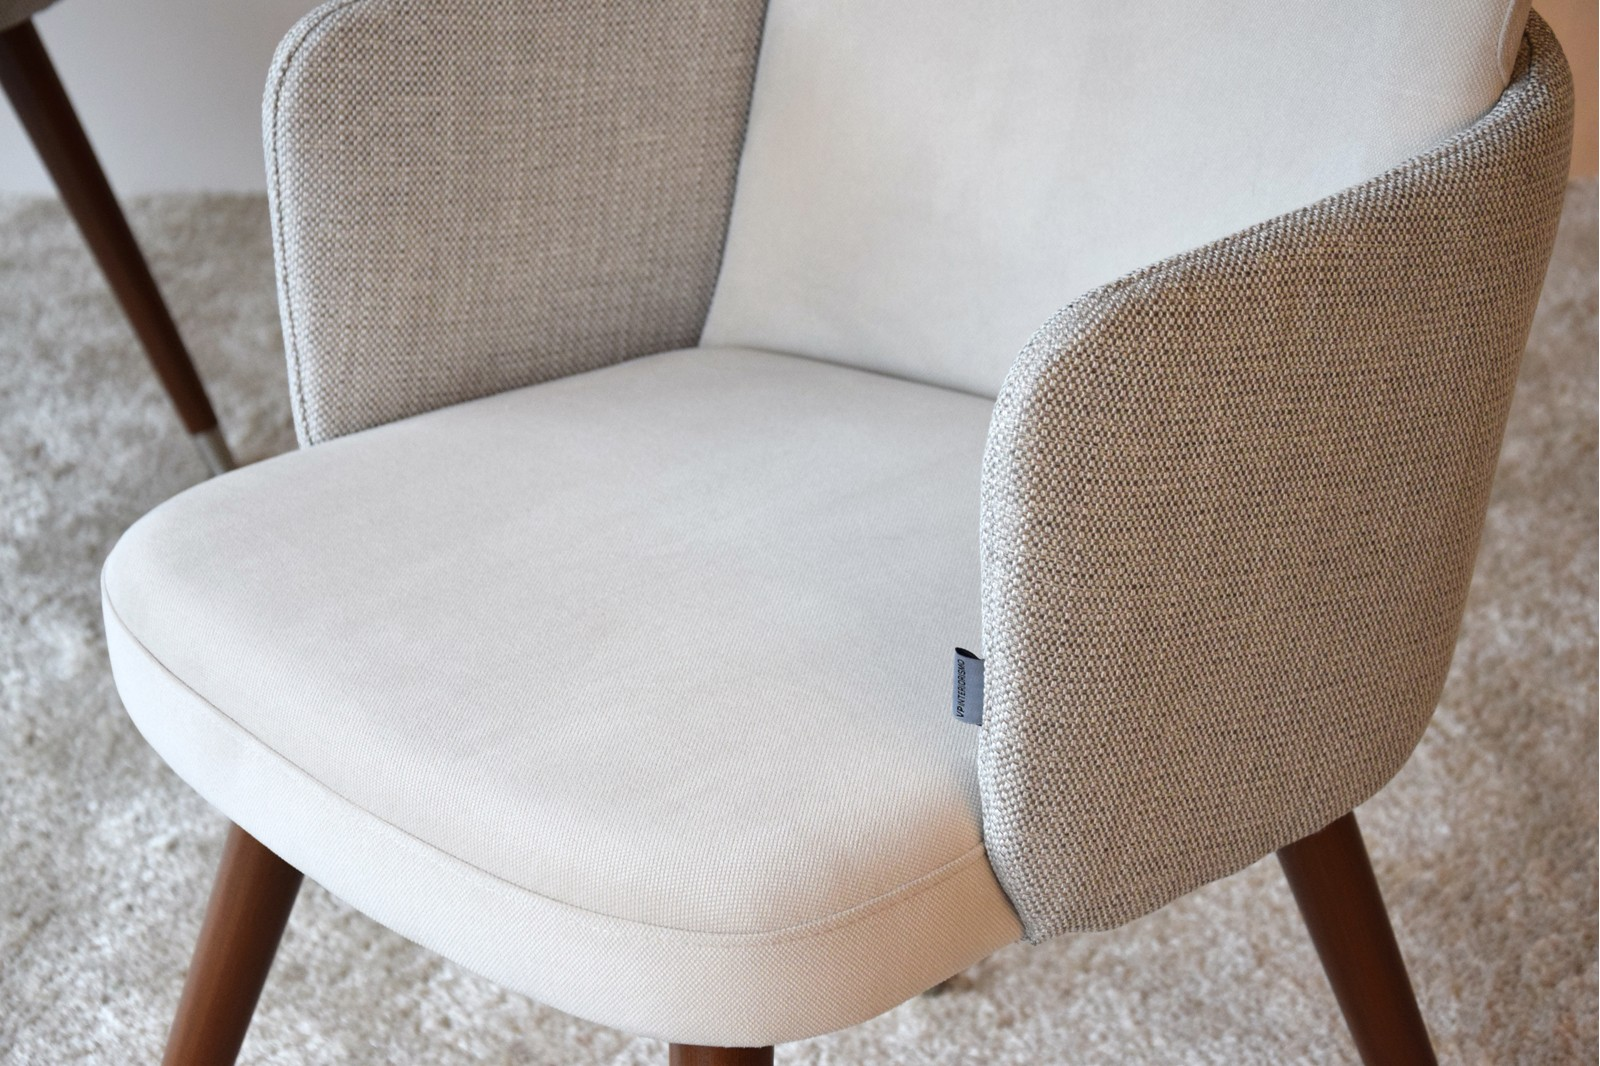 SET 2 DINING CHAIRS. BEIGE COLOR